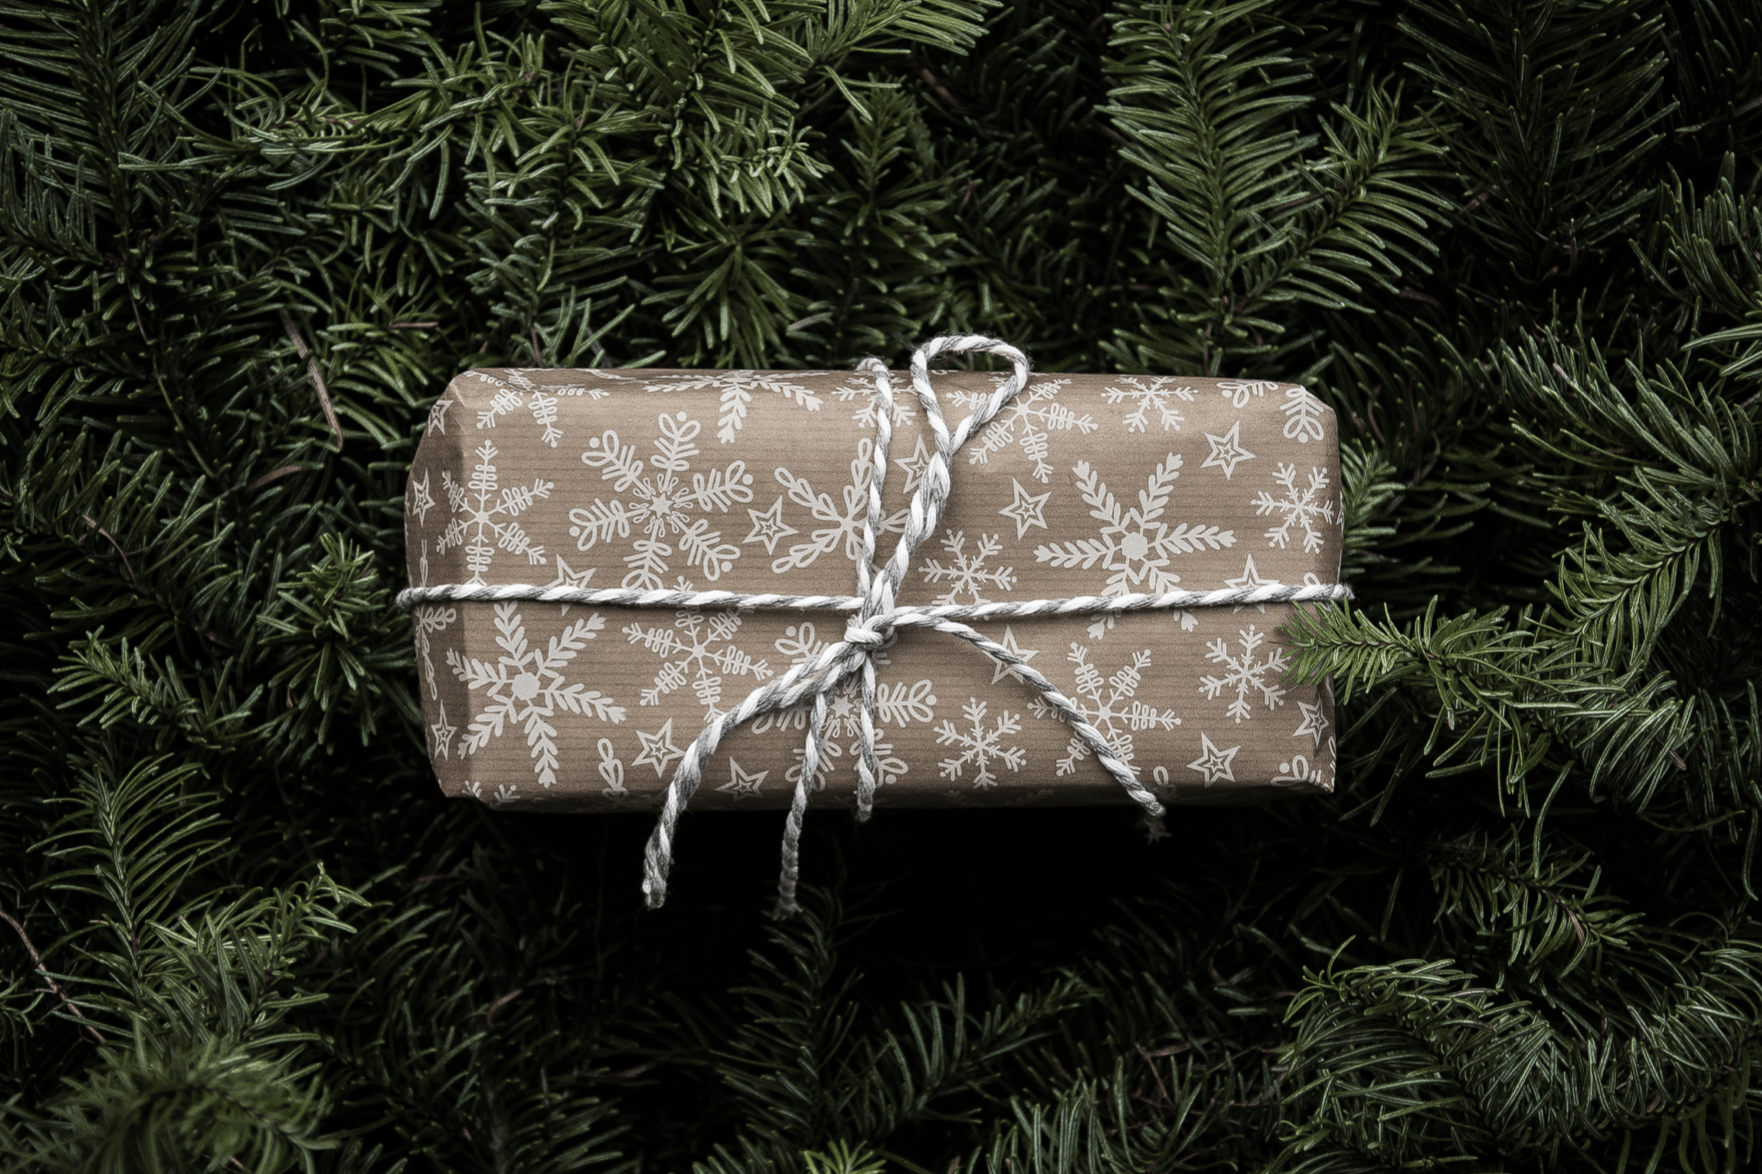 Gift with white snowflakes on the wrapping and a string bow in front of a pine tree